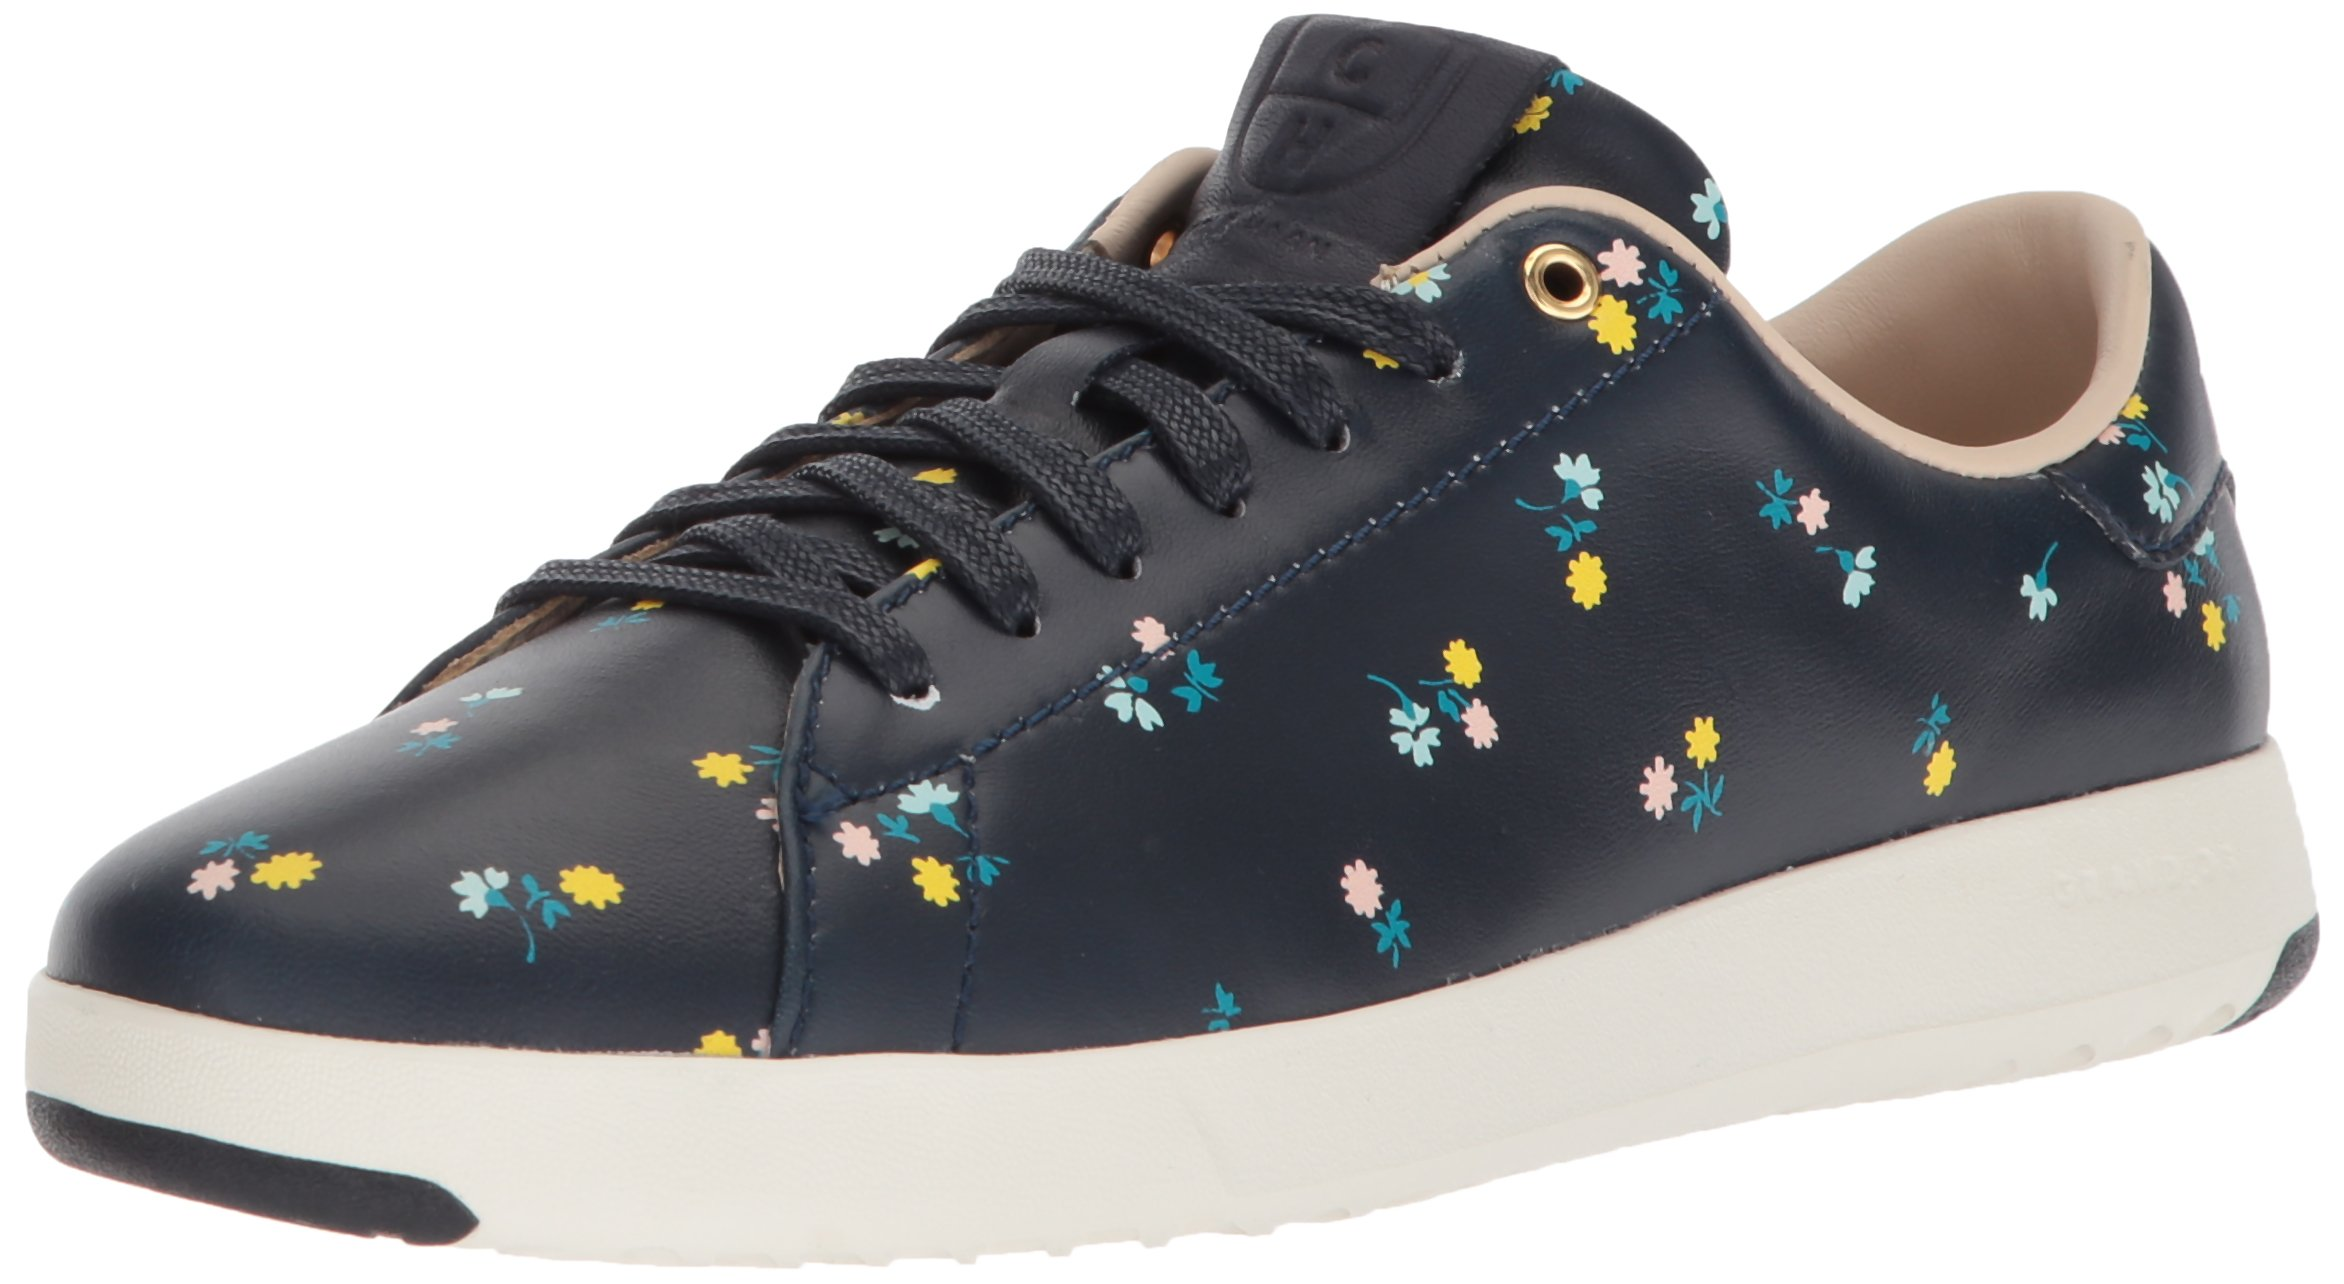 Cole Haan Women's Grandpro Tennis Sneaker, Navy Dotted Floral, 8.5 B US